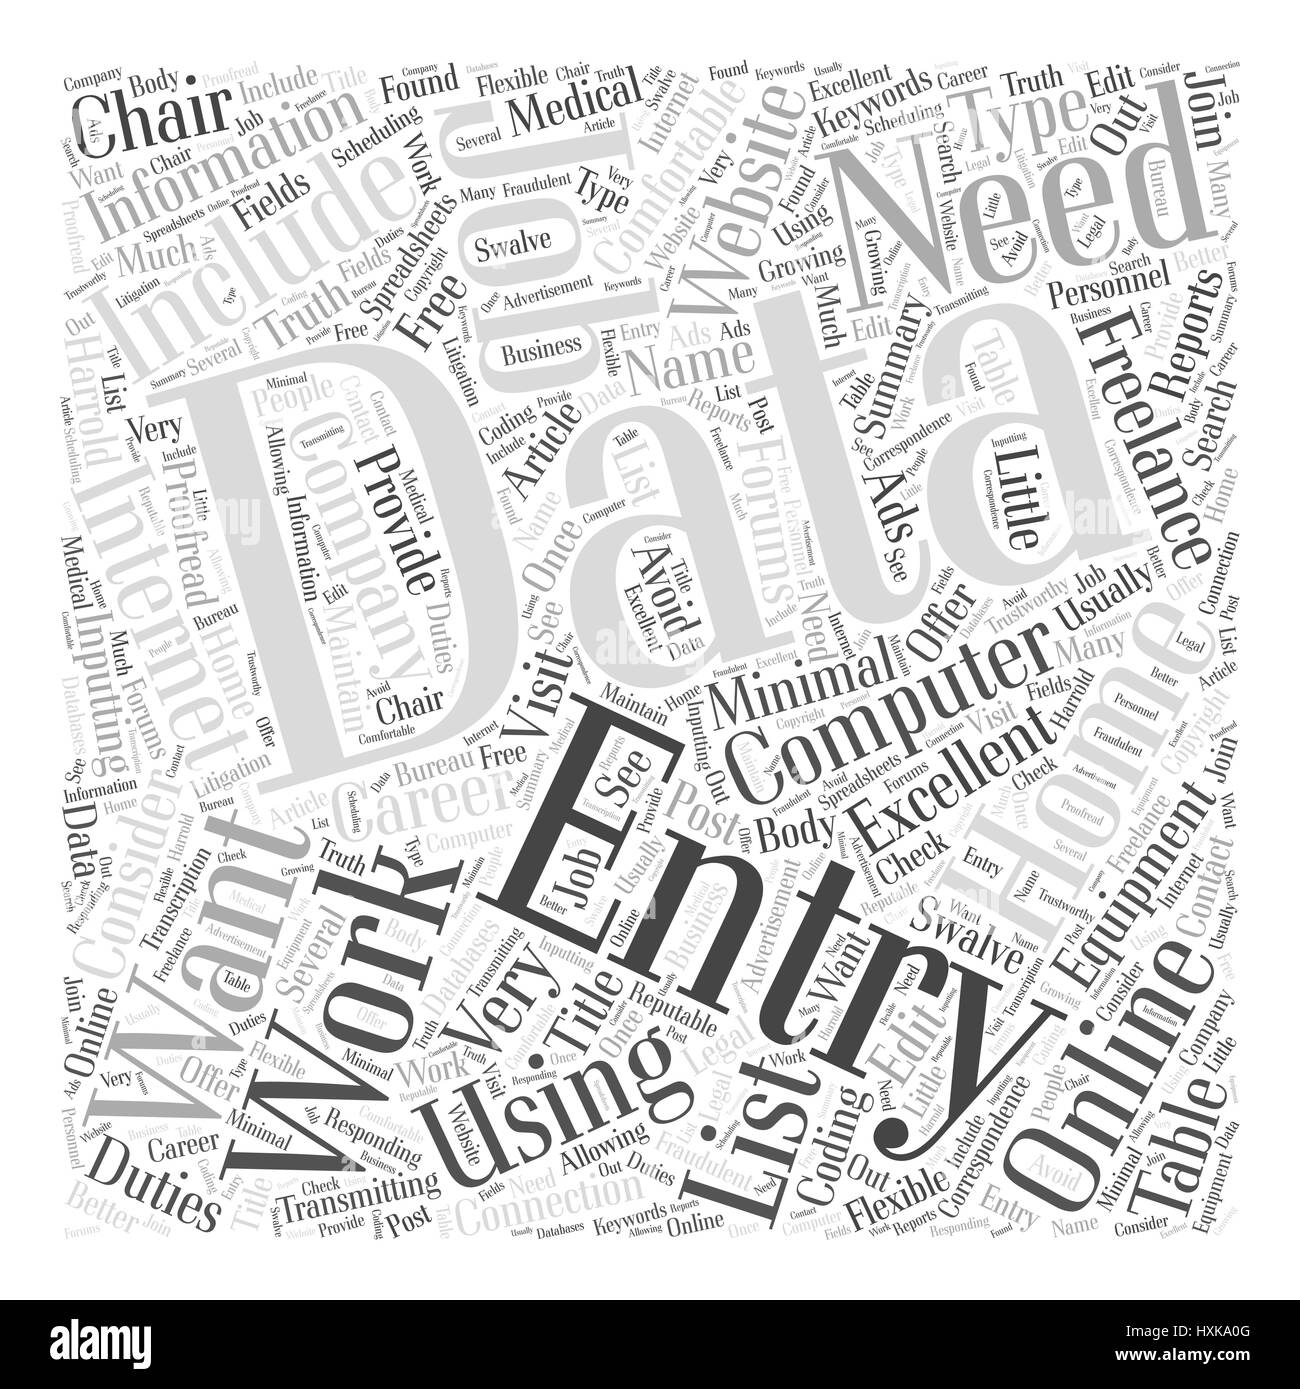 The Truth about Data Entry Work at Home Jobs Word Cloud Concept ...